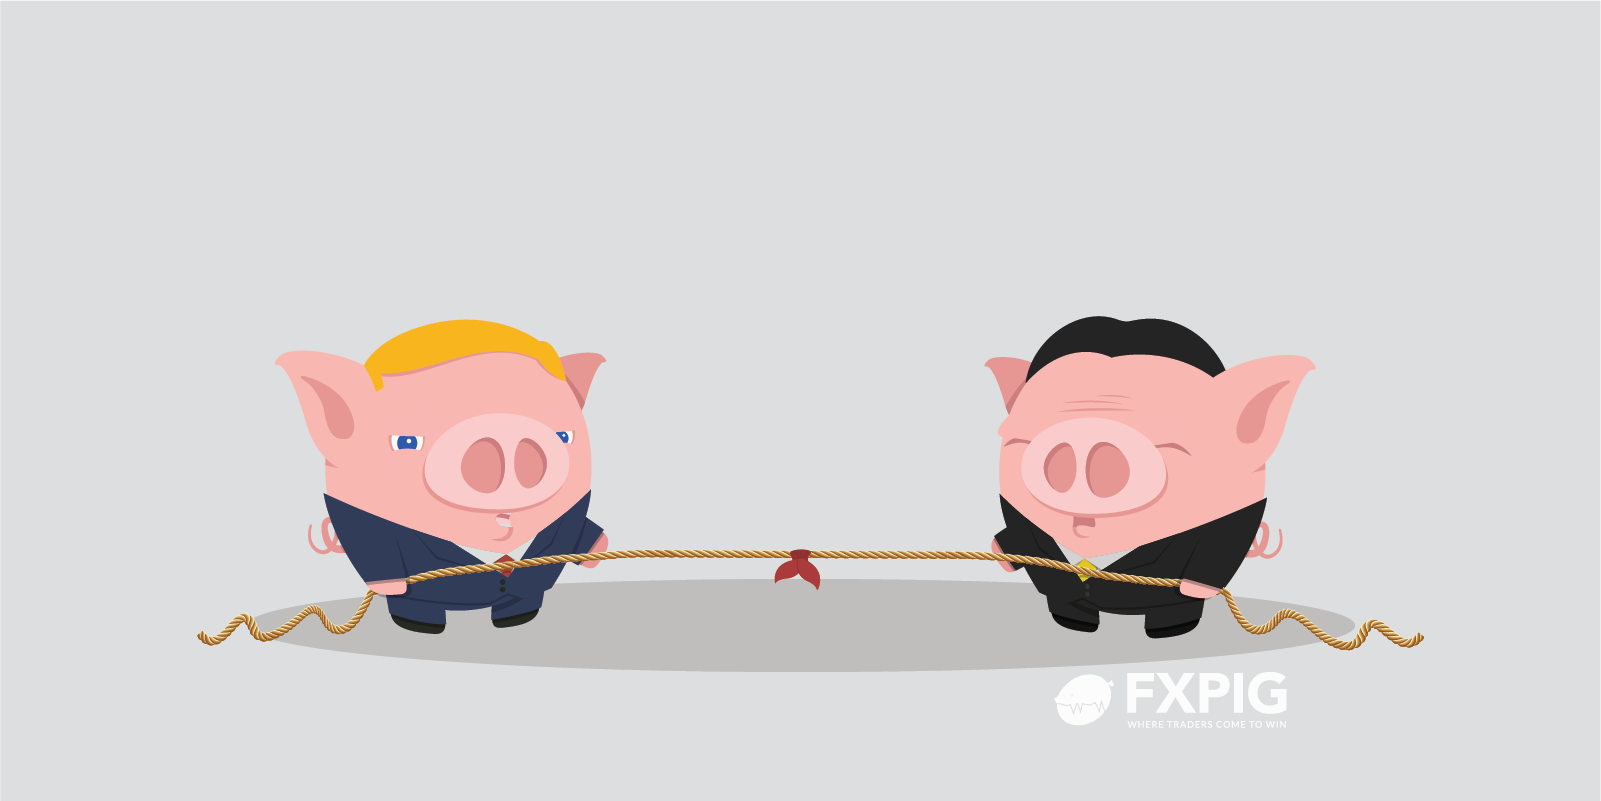 Trump_trade_comments_Forex_FXPIG